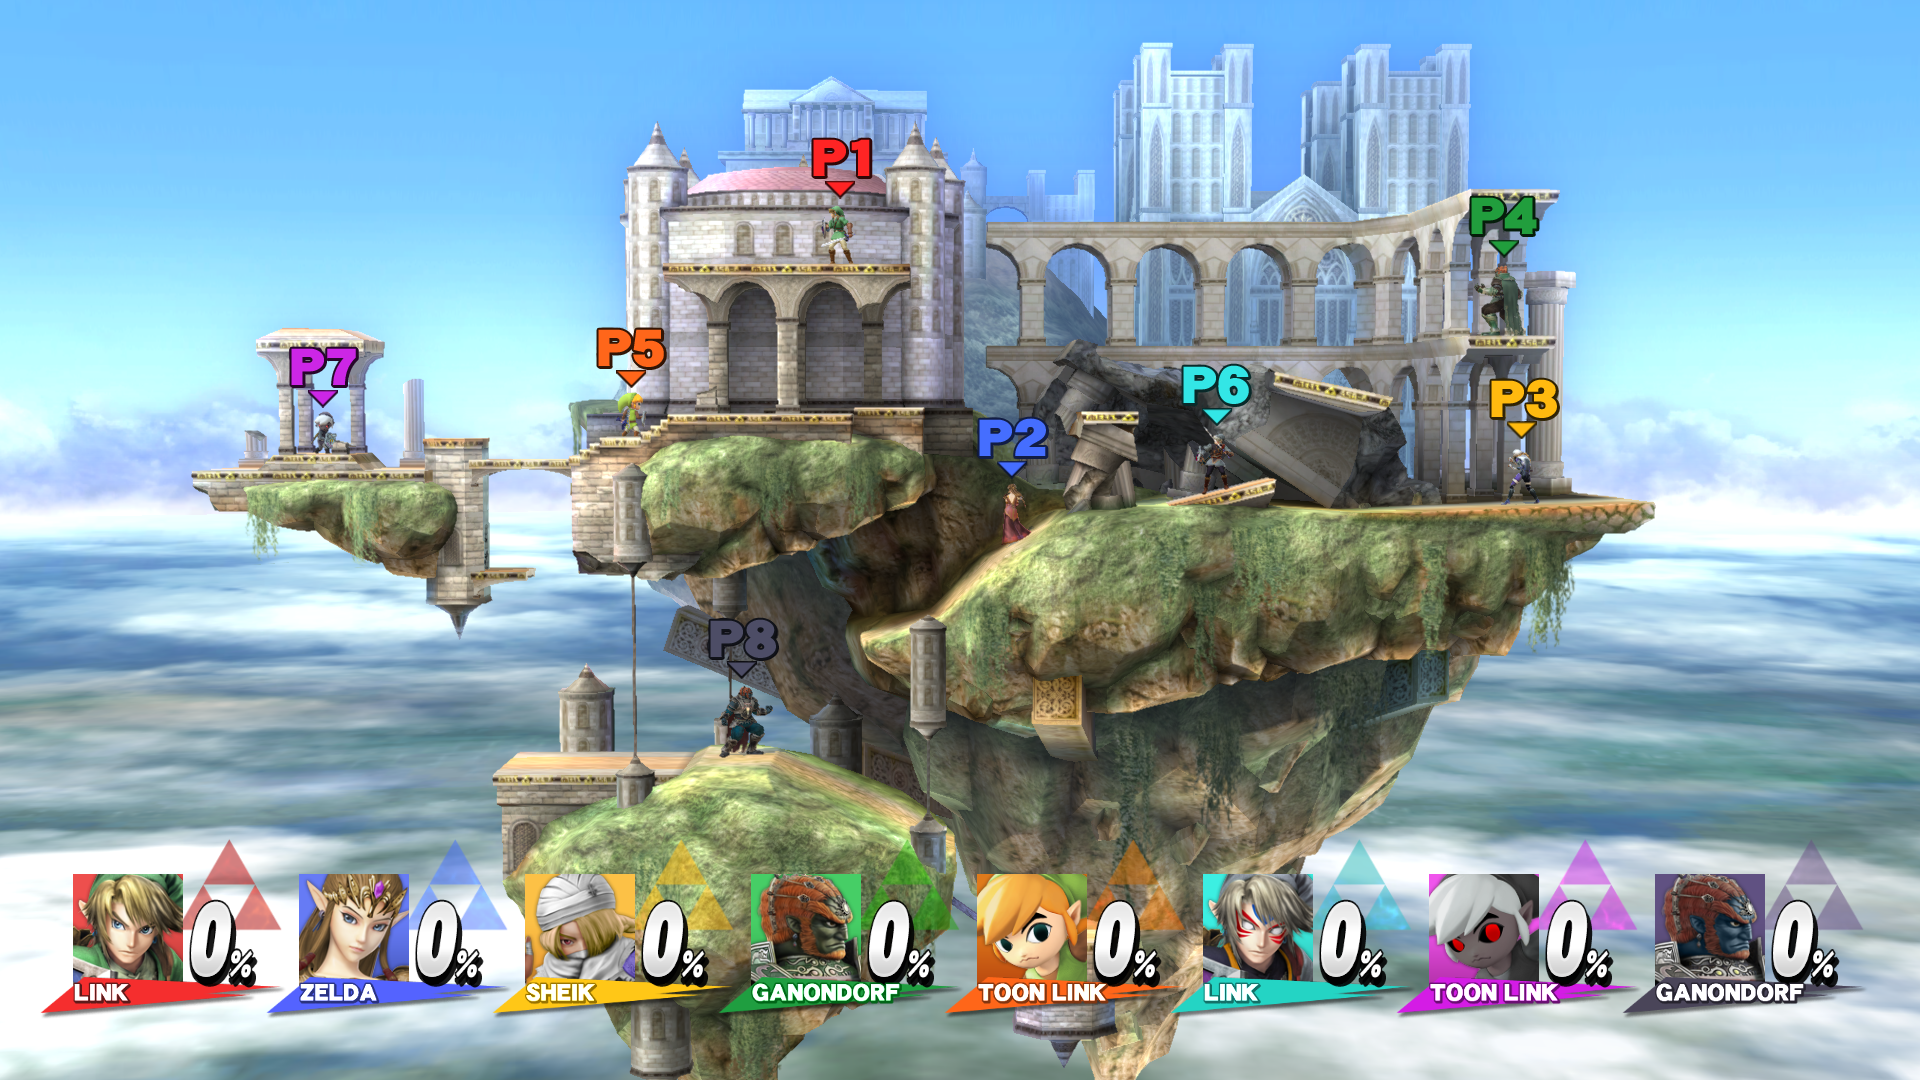 super_smash_bros_for_wii_u_wiiu.png